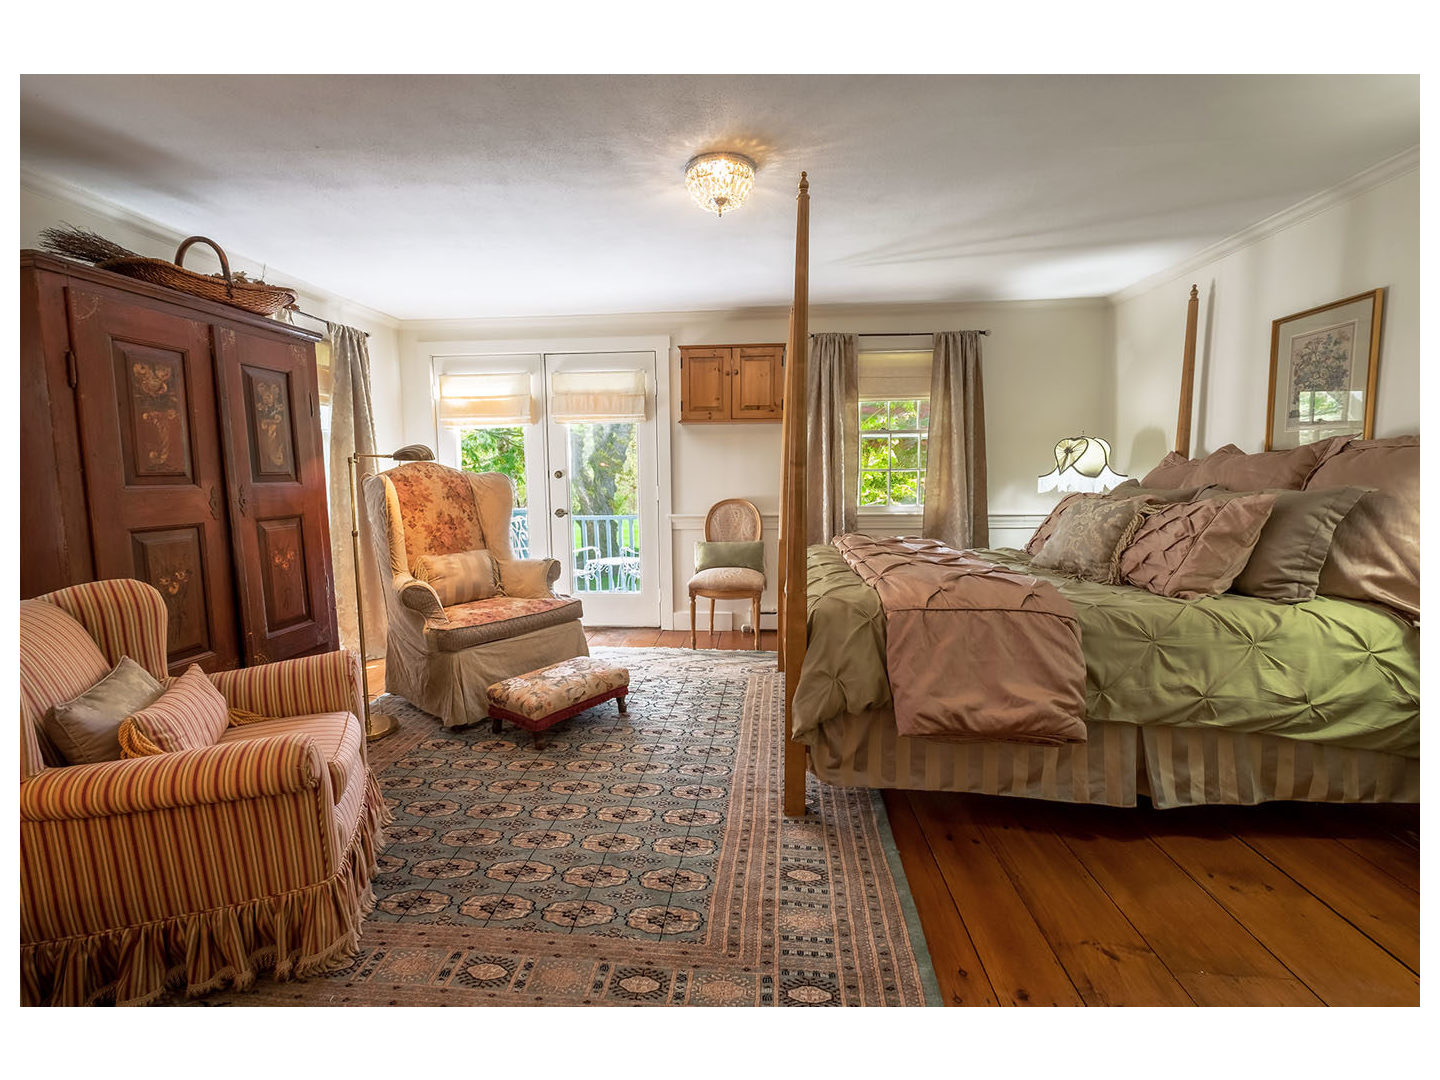 A bedroom with a bed in a room at Hartwell House Inn.